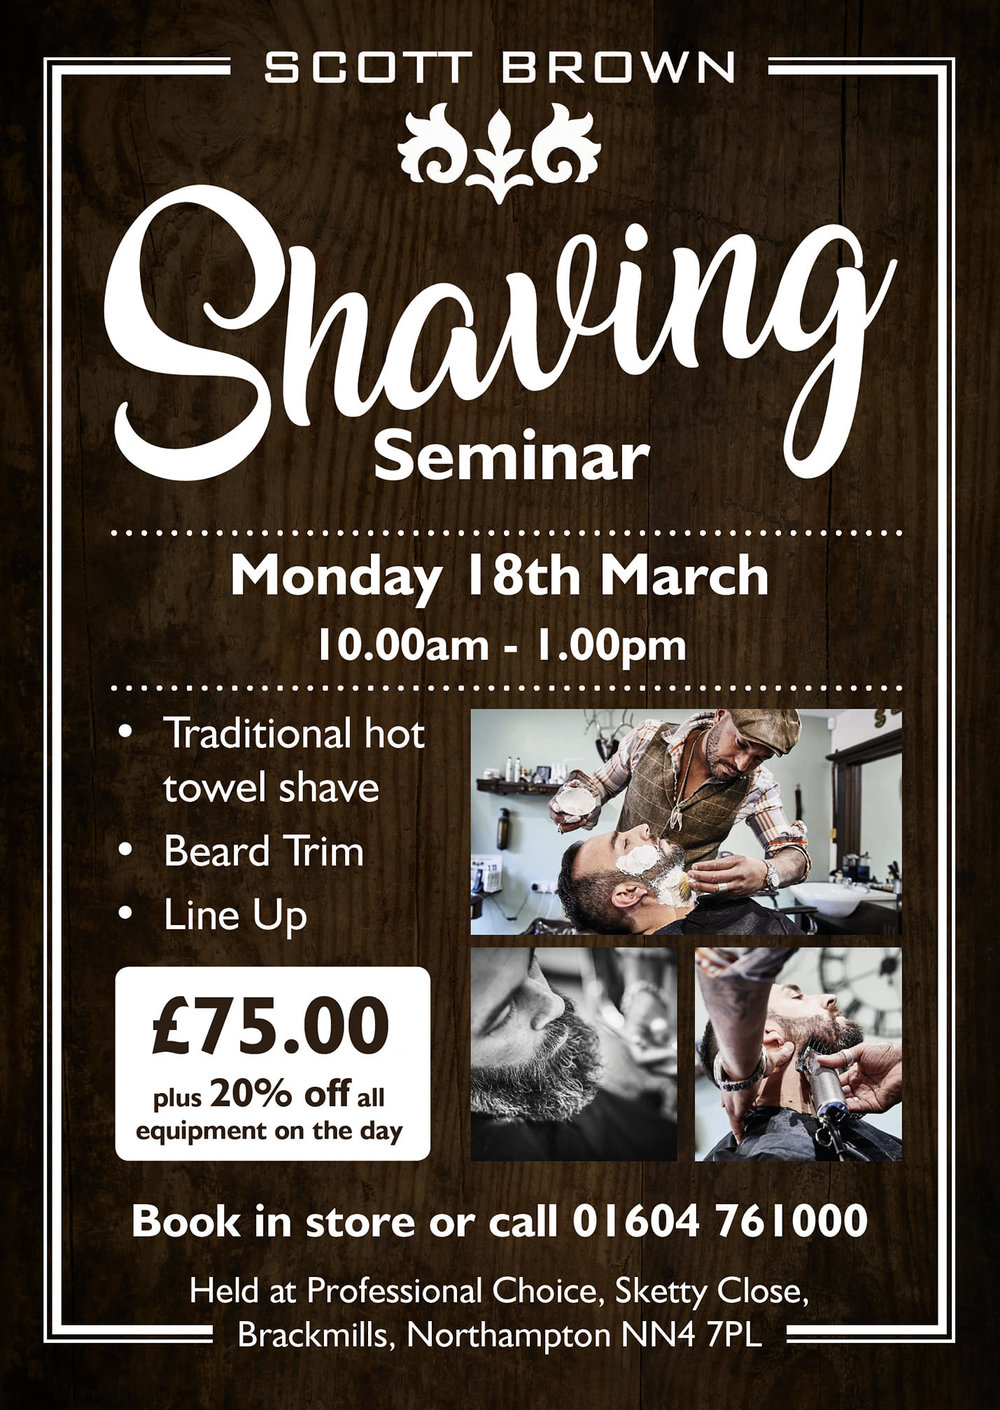 shaving-seminar-northampton-march-2019.jpg